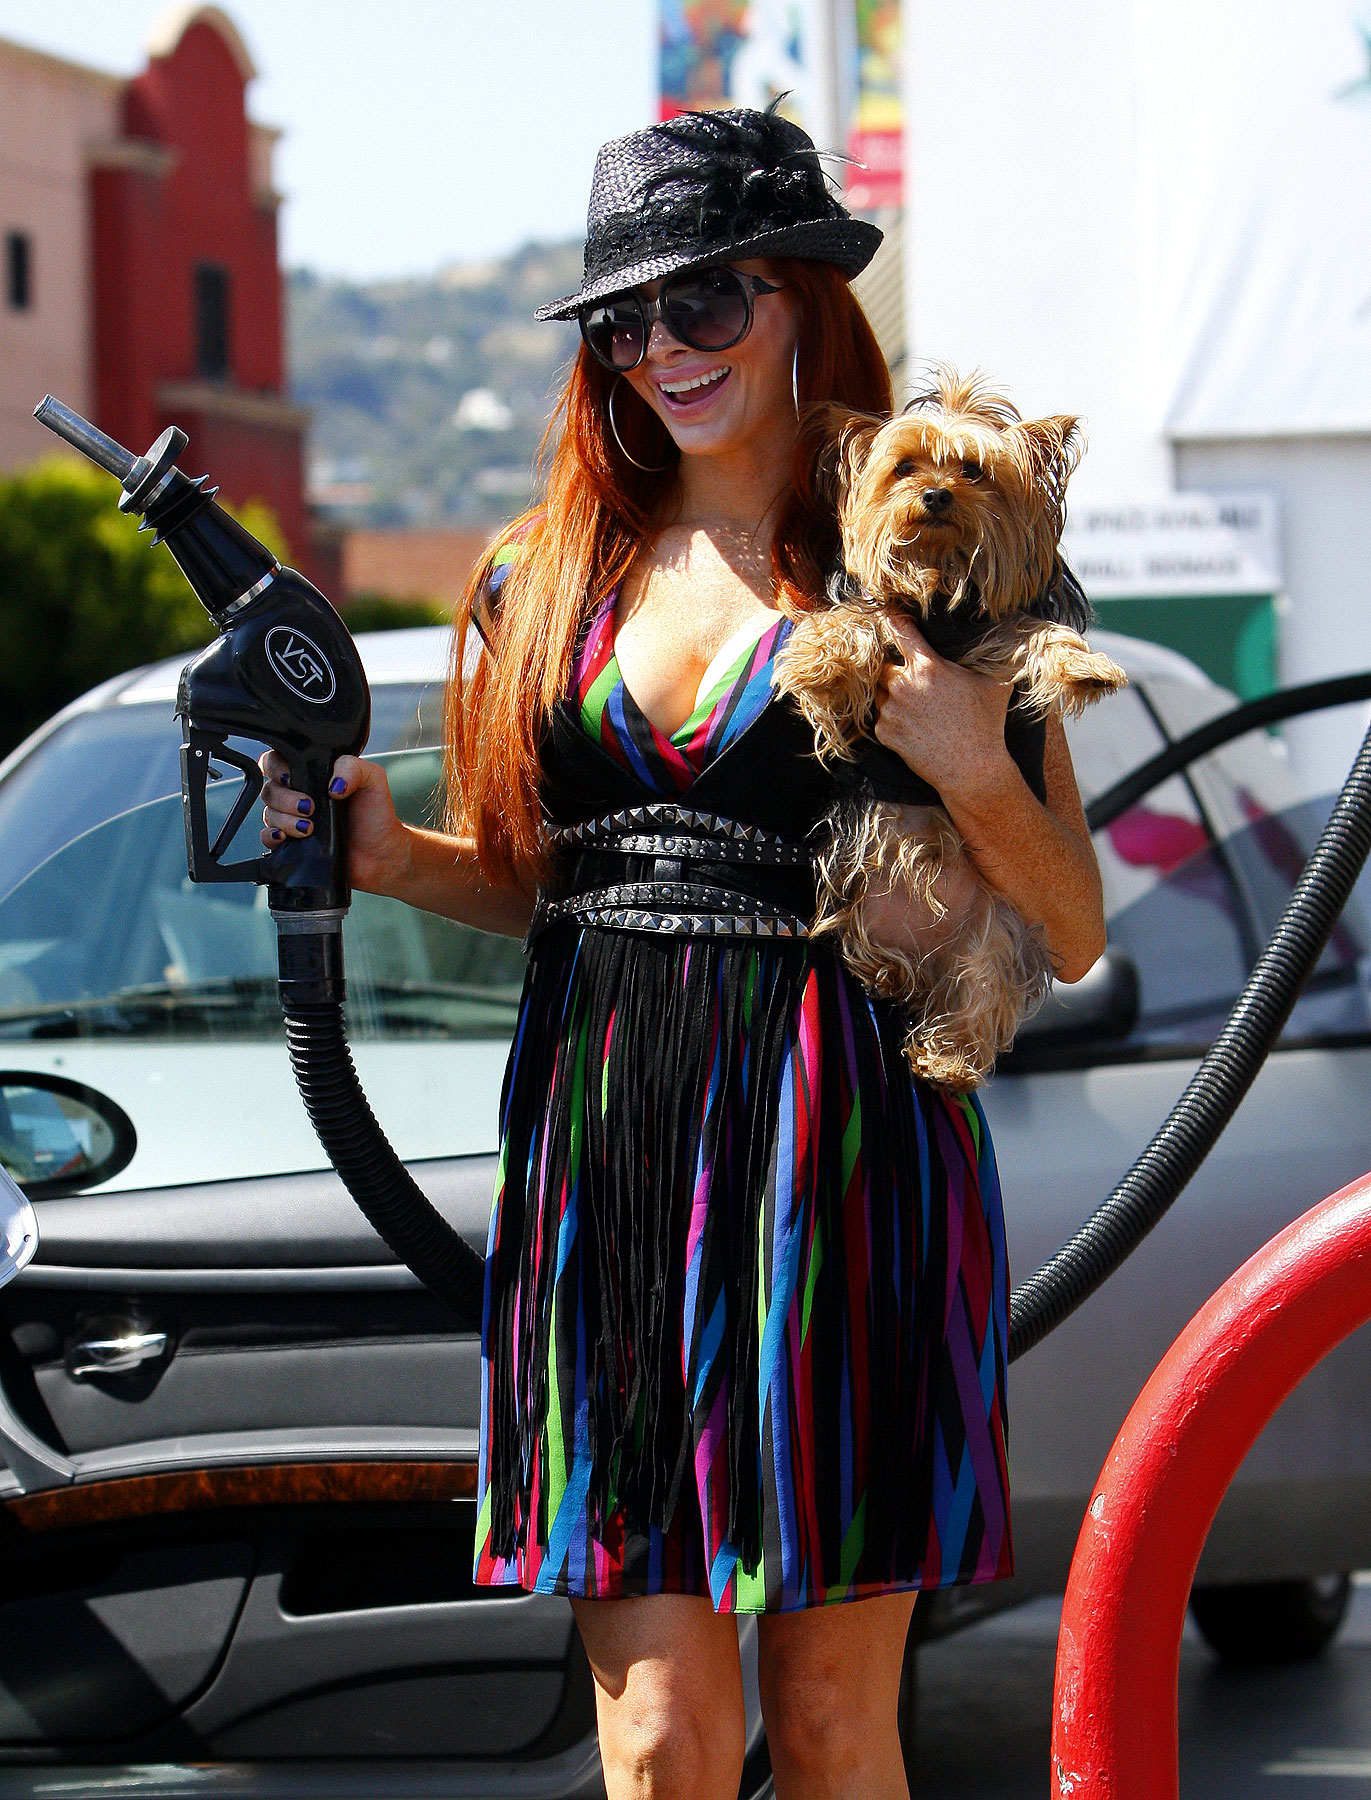 Fashion FAIL: Phoebe Price Introduces The Gas Pump Accessory (PHOTOS)